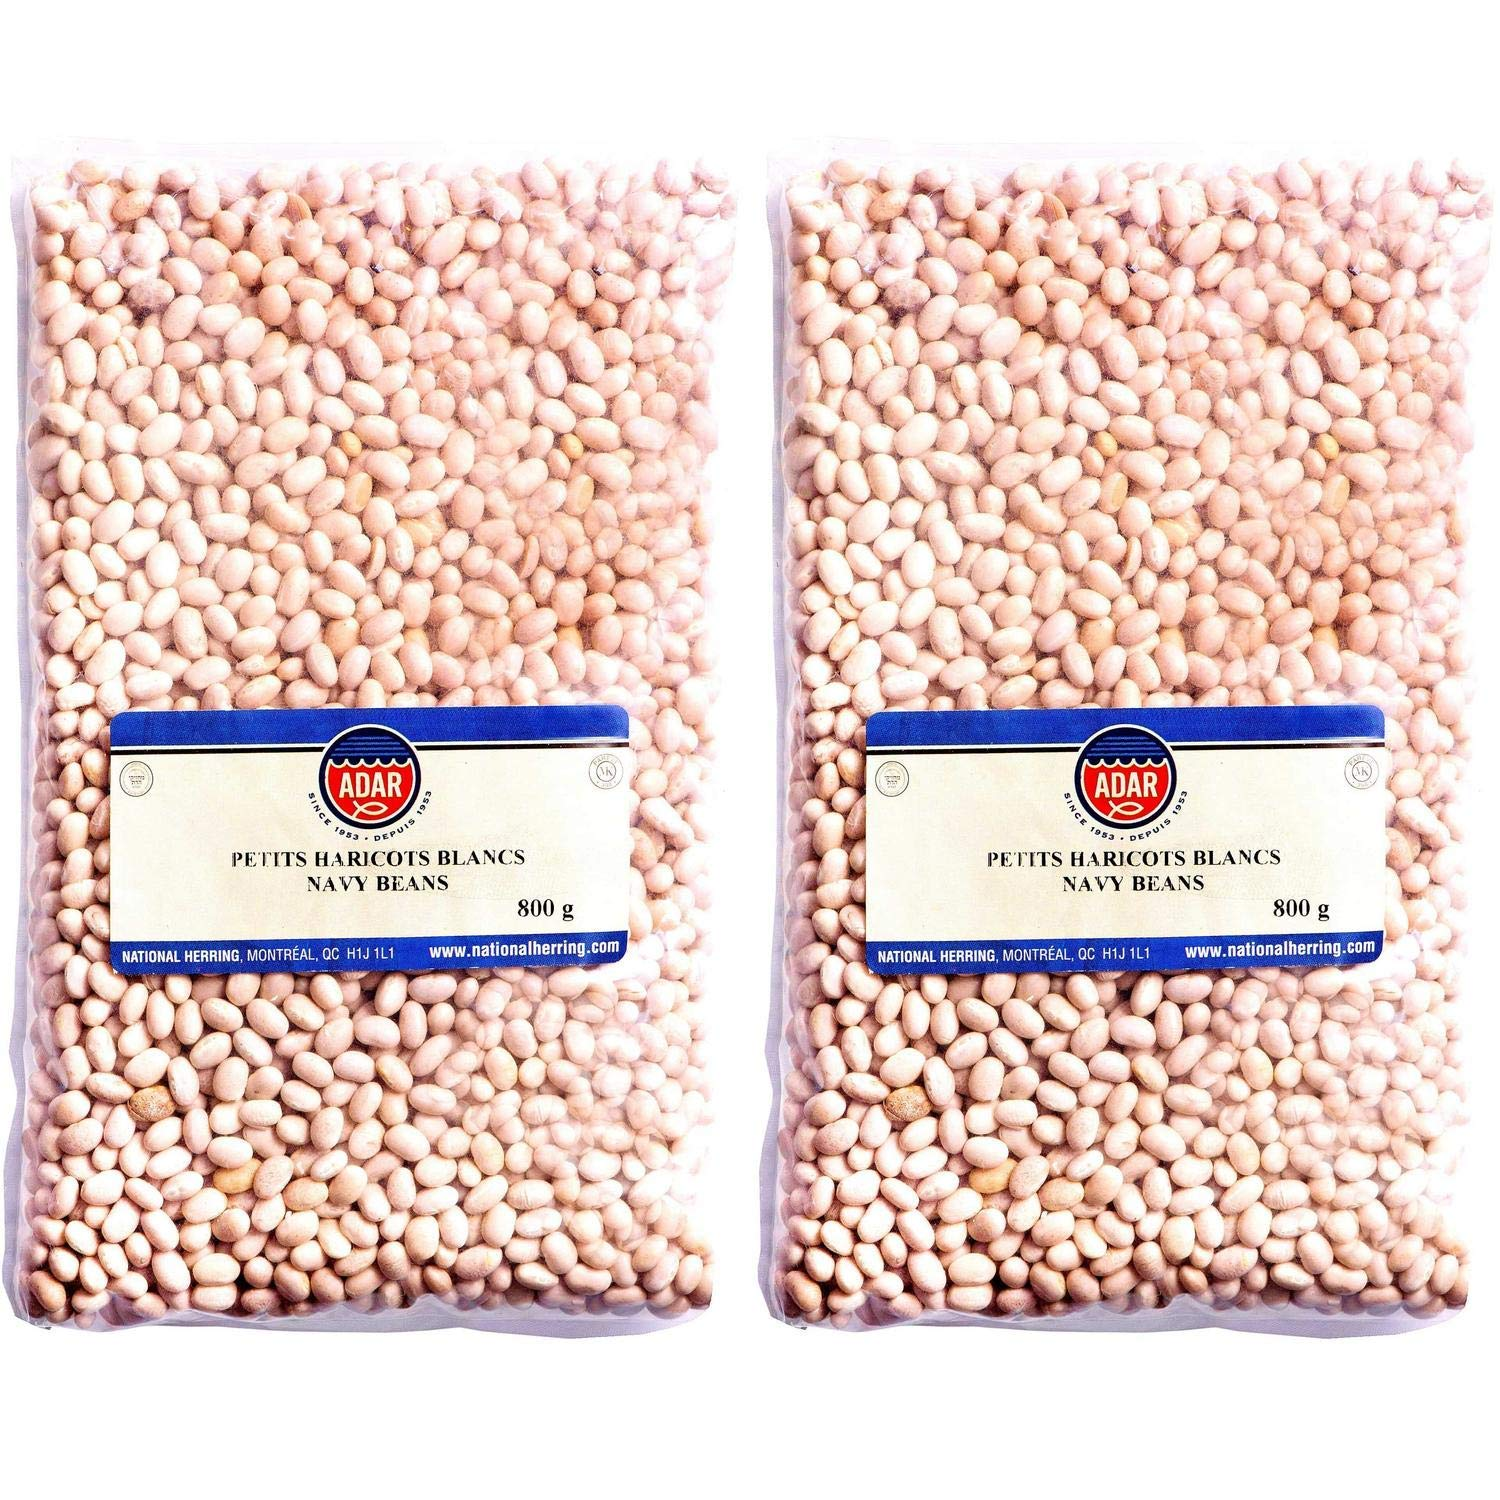 Dry White Navy Beans, 2 Bags, Total of 3.5 Pounds | Dried Kosher Legumes, Non-GMO and Vegan Friendly, Fresh Delicious Flavor for Soups, Salads, Chili or Meals, Rich in Iron, 56-Oz. Bulk Order